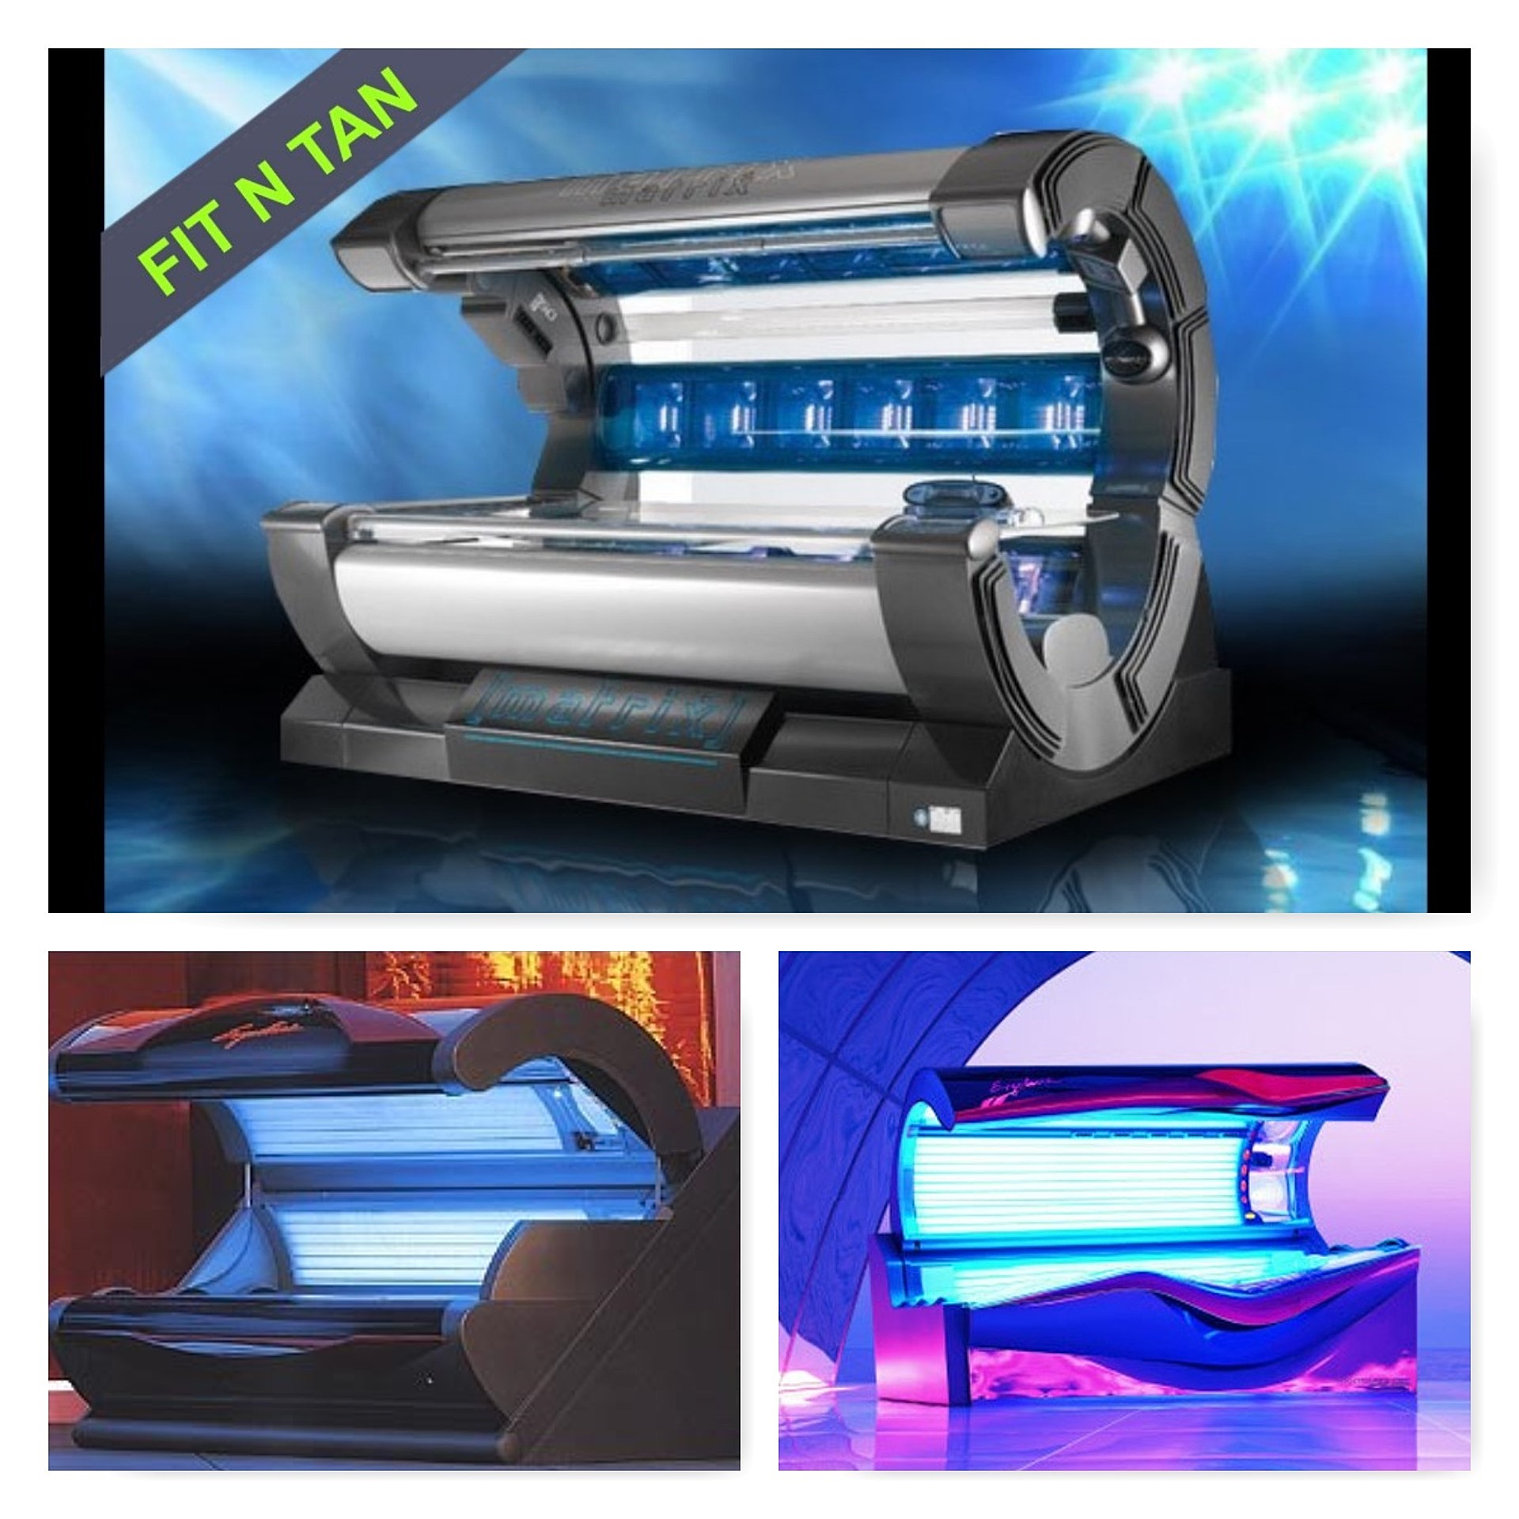 com full service tanning salon and spa fit n tan tanning salon and spa